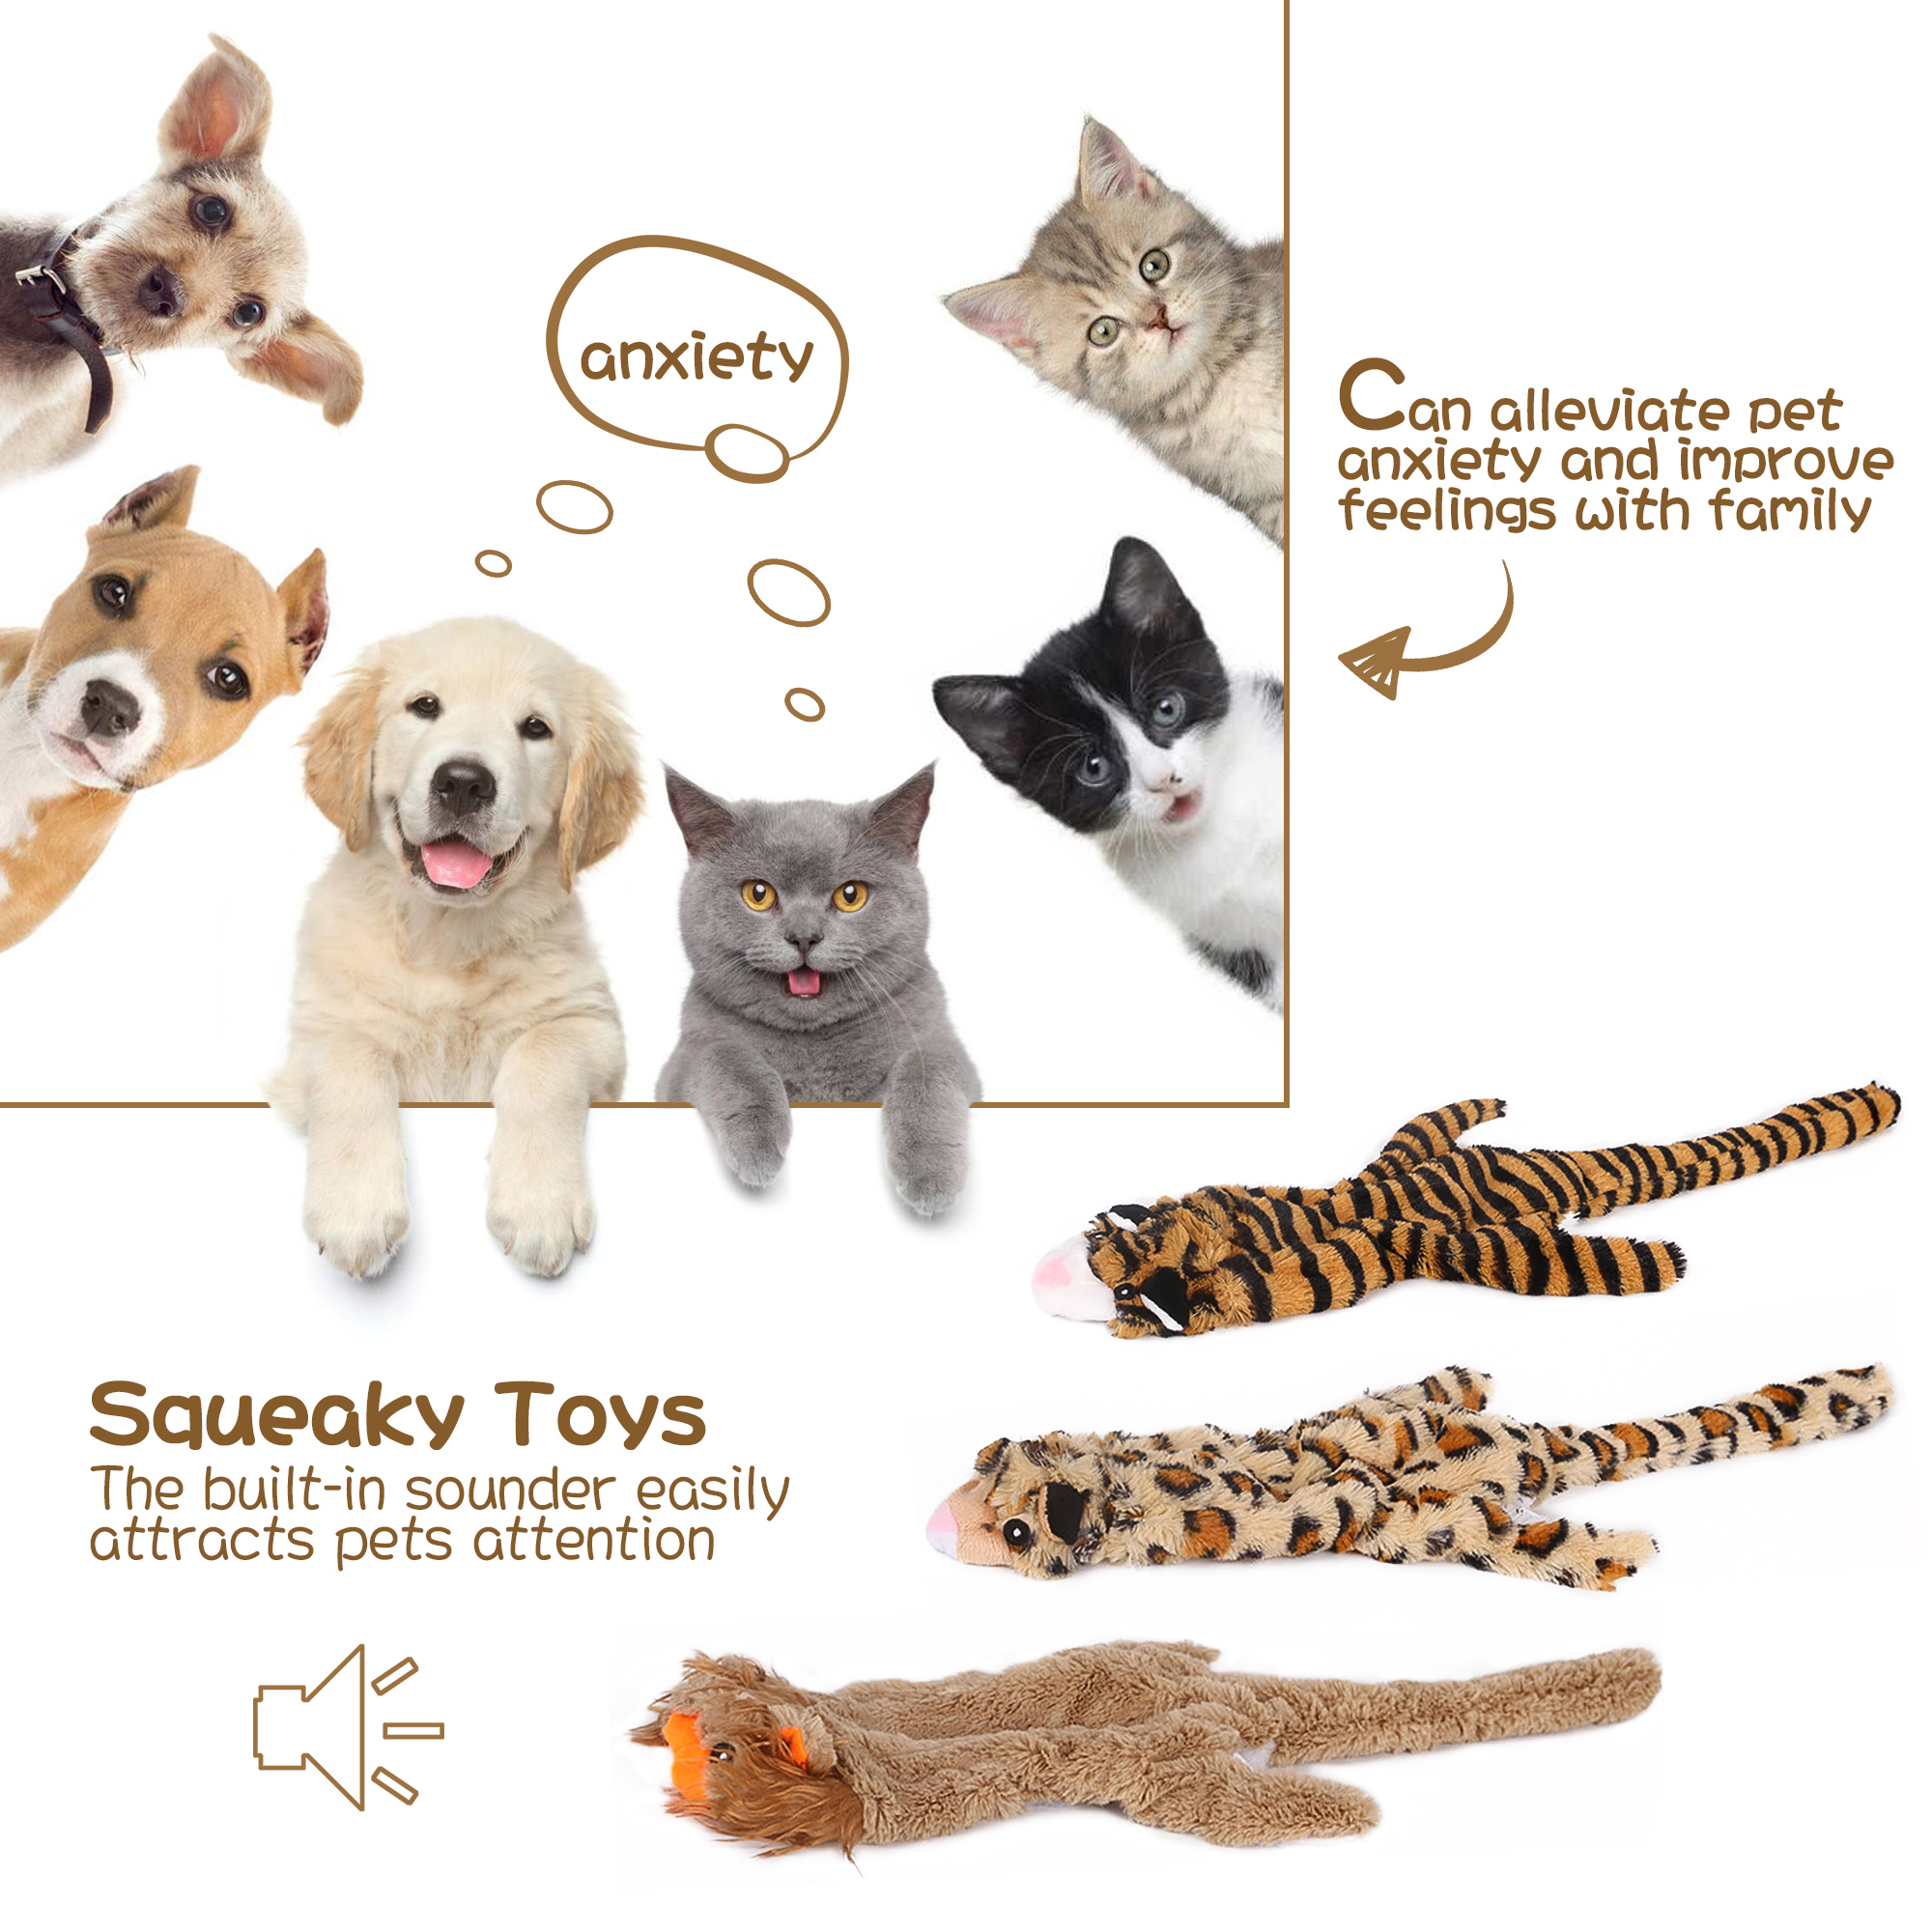 Squeaky Toys for Dogs, Value 3 Pack Set of Dog Chew Toy for Teething Chewing and Playtime, Durable Puppy Squeaky Dog Toys Stuffed Animal Plush Animal Dog Toy Set for Small Medium Large Dog Pets